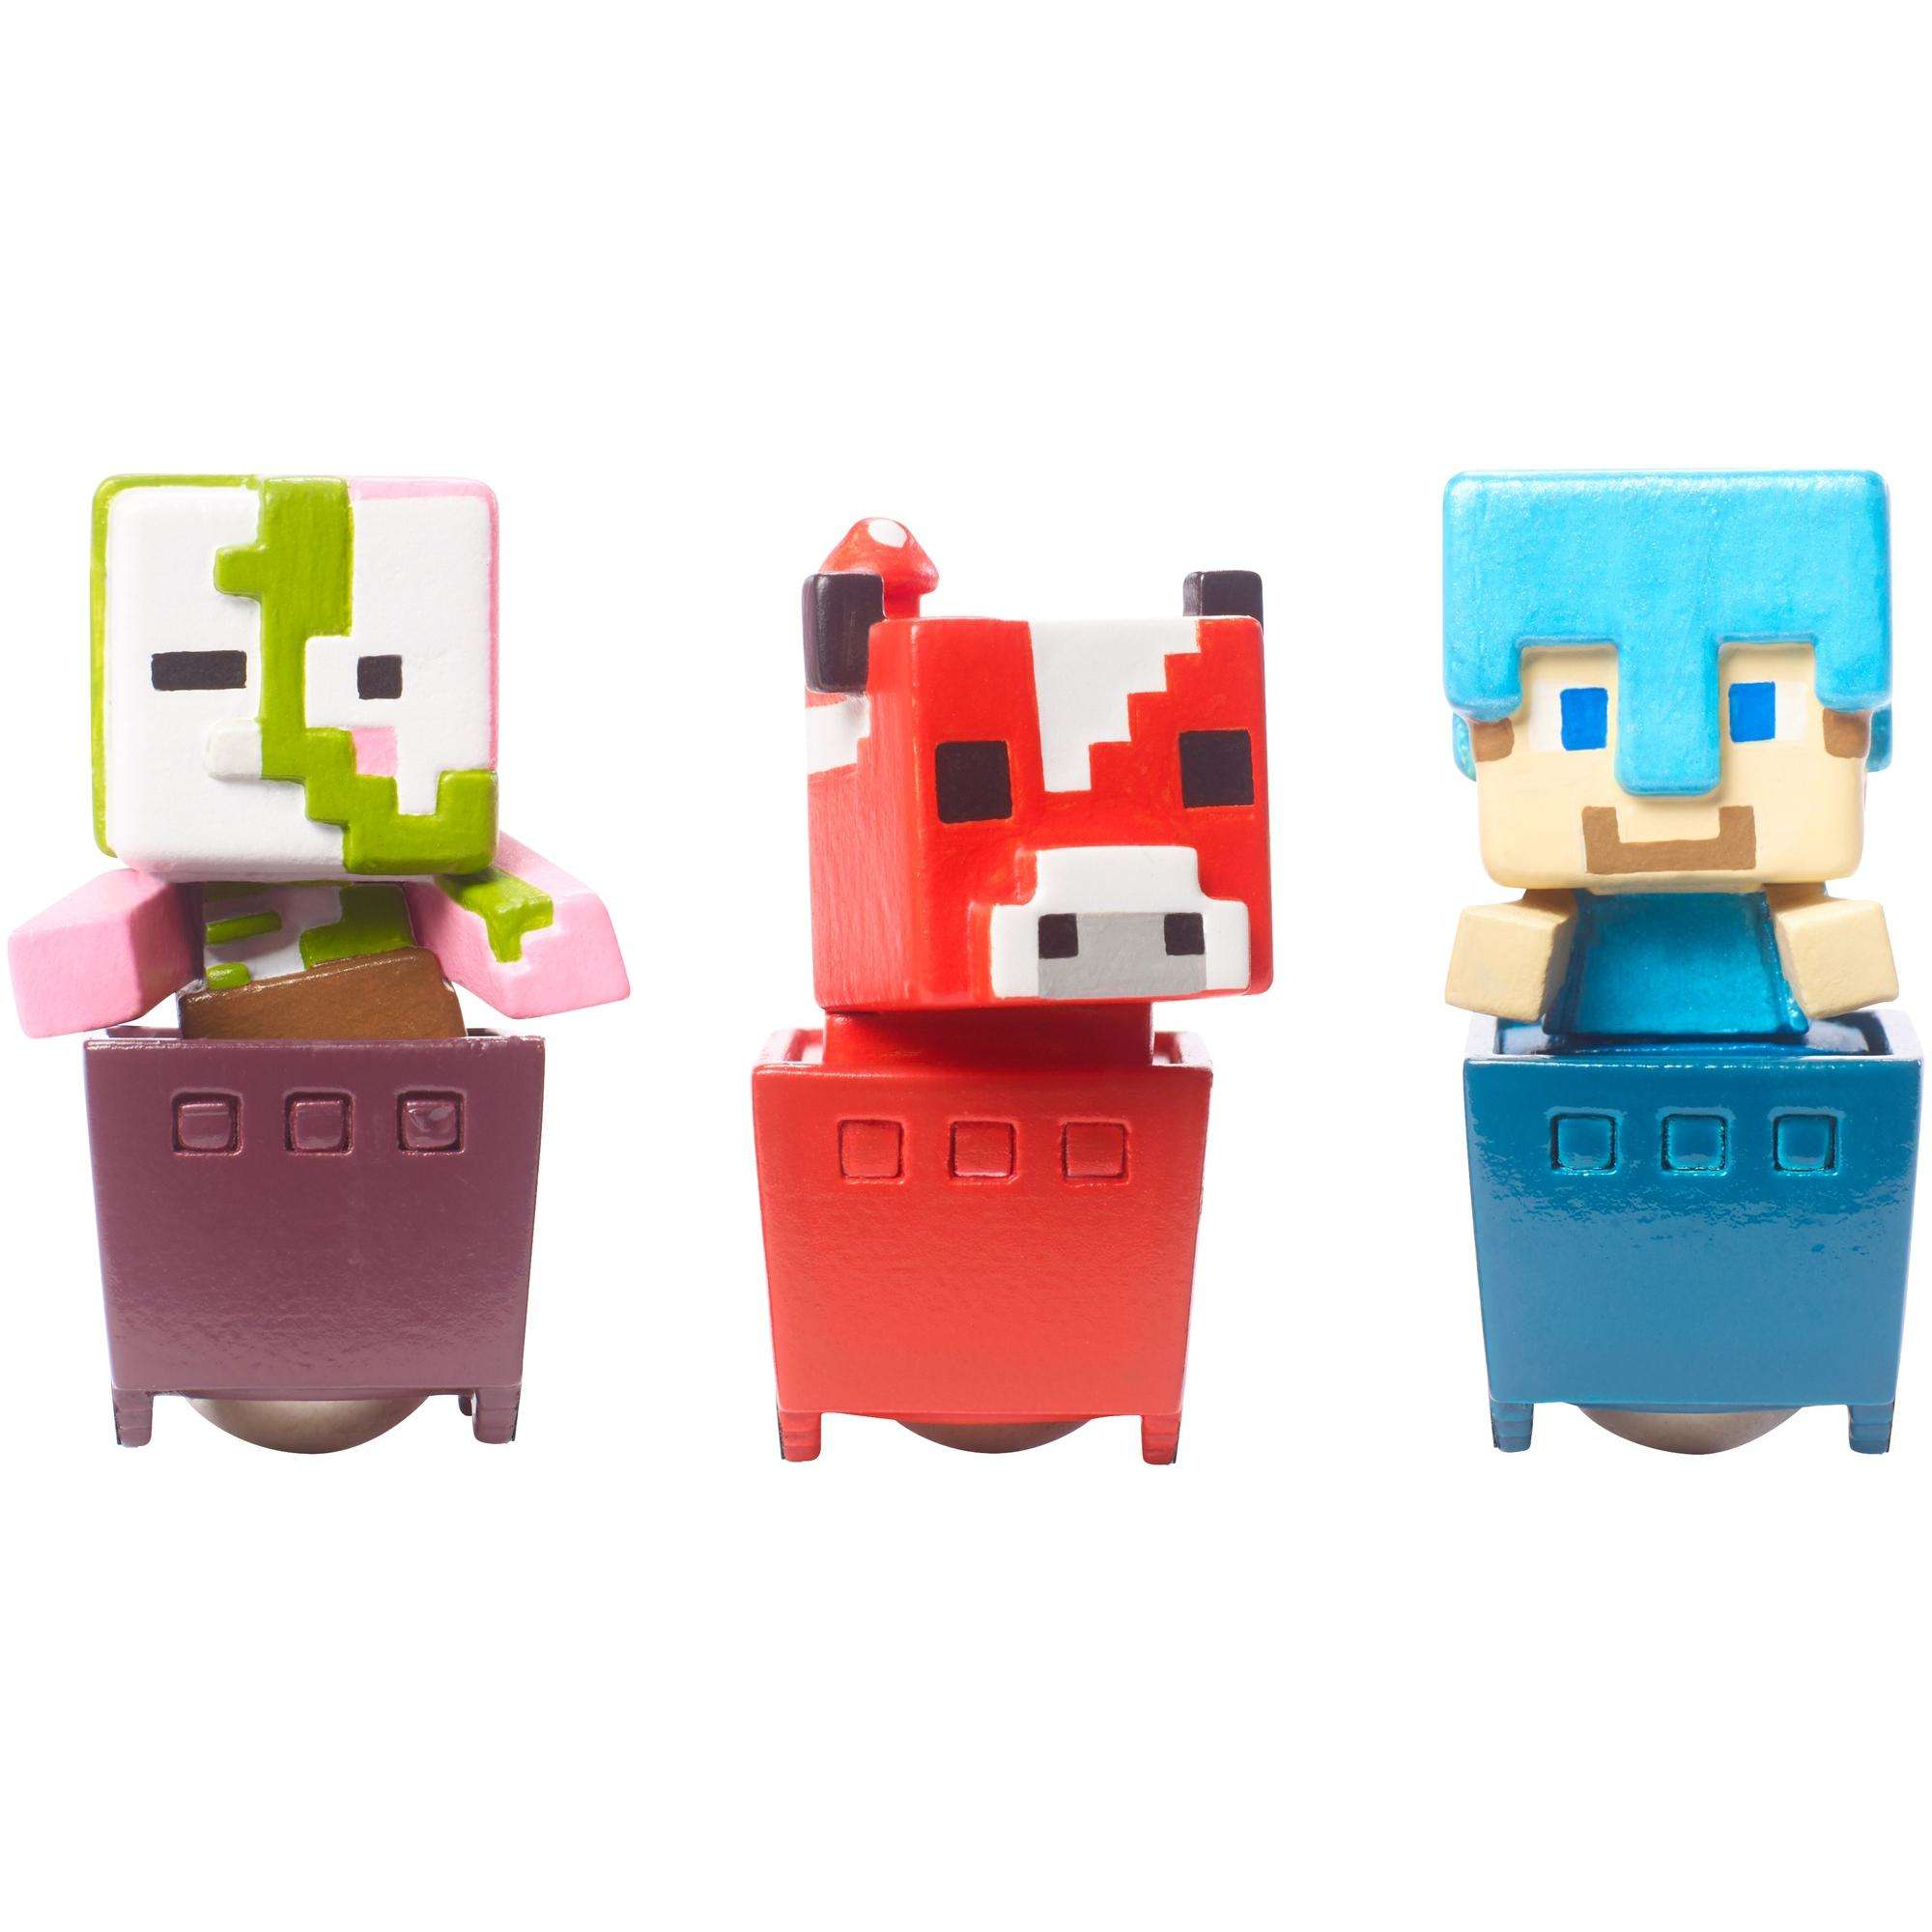 Minecraft Minecart Mini-Figure Zombie Pigman, Diamond Steve, And Mooshroom 3-Pack by Mattel